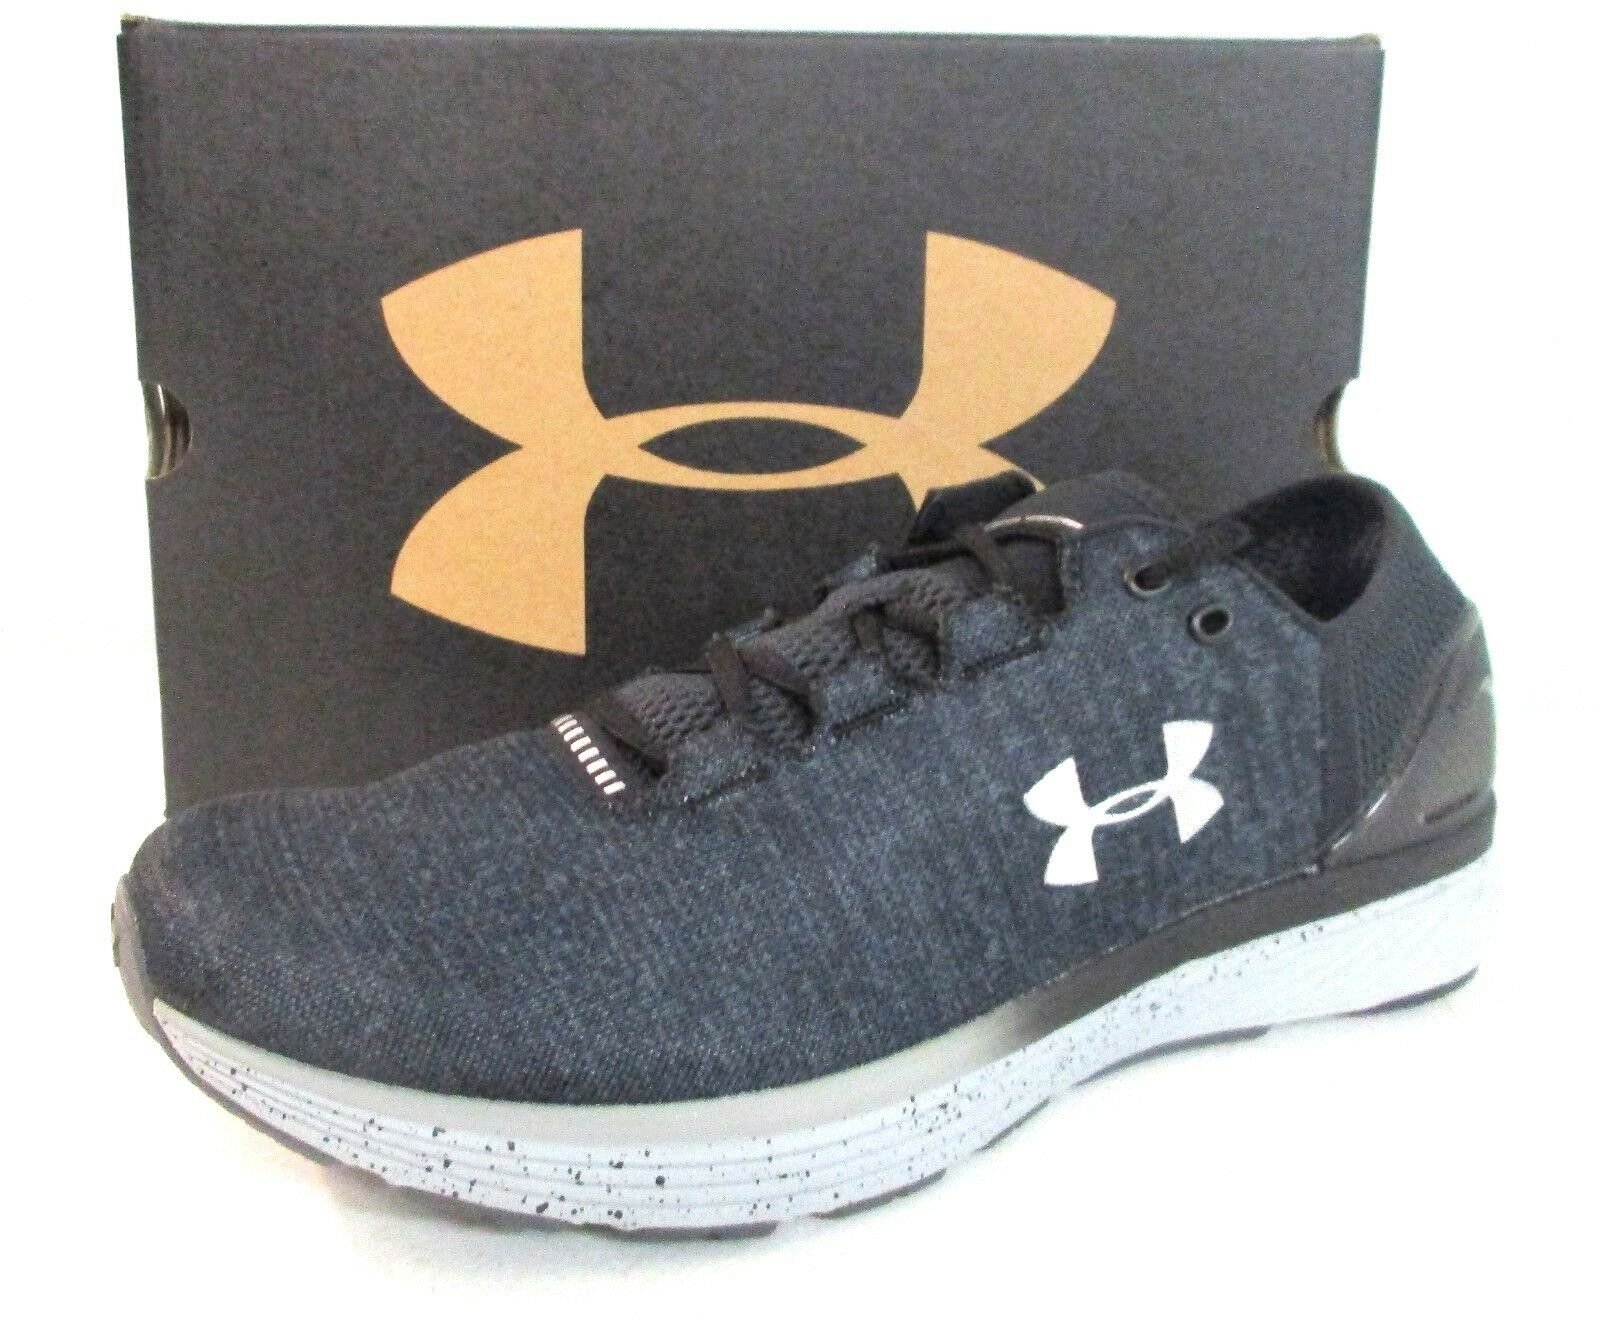 new style 17ae6 a189d Under Armour Men s Charged Bandit Bandit Bandit 3 Stealth Gray Black Size  11.5 - 1199